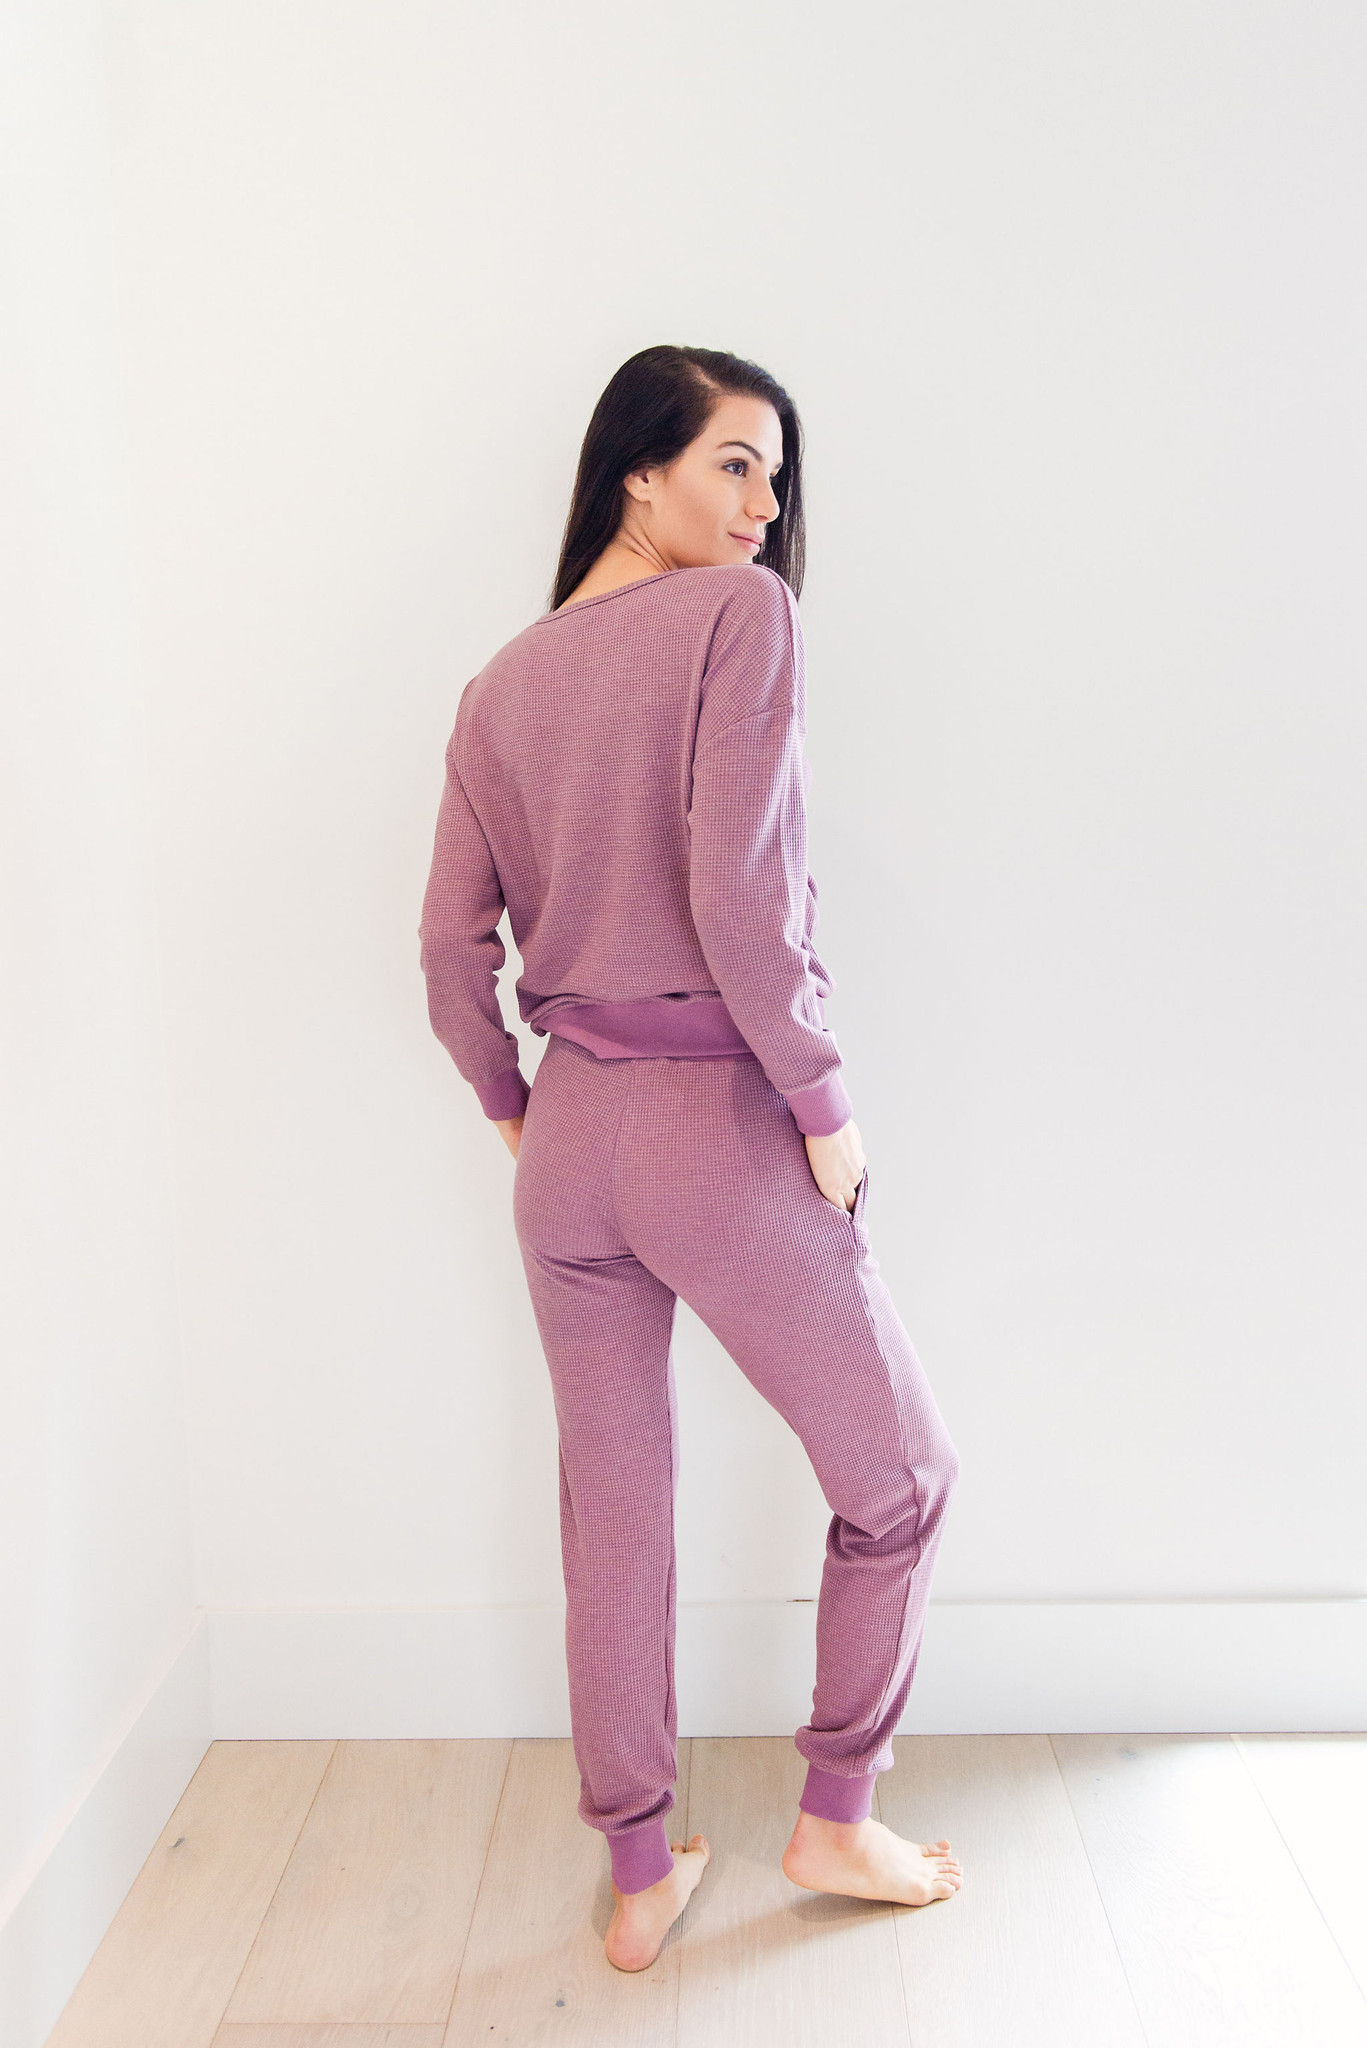 The Waye waffle set that sold out in three colors so fast, is now available in a brand new exclusive color!  Did somebody say waffle?  Listen.  Nobody doesn't like waffle fabric.  This two piece lounge set features a long sleeve crew neck top, with cuff sleeves, and a long pair of loose tapered pants.  Both comfortable and fashionable, you can wear this both at home and around town.  You know what we will be wearing this season.    Model is 5'9 and wearing a size small.